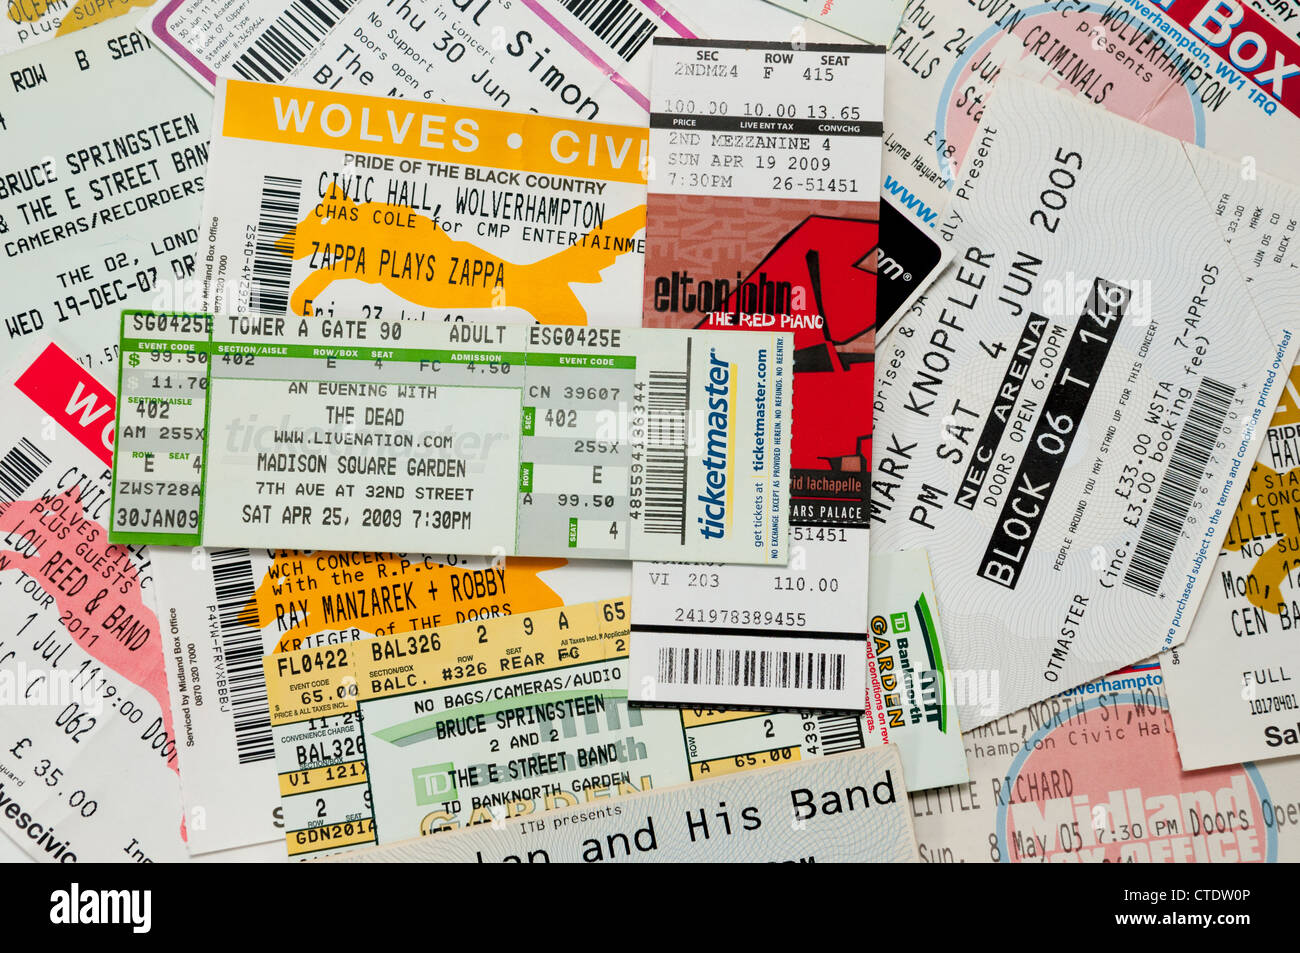 A pile of concert tickets - Stock Image